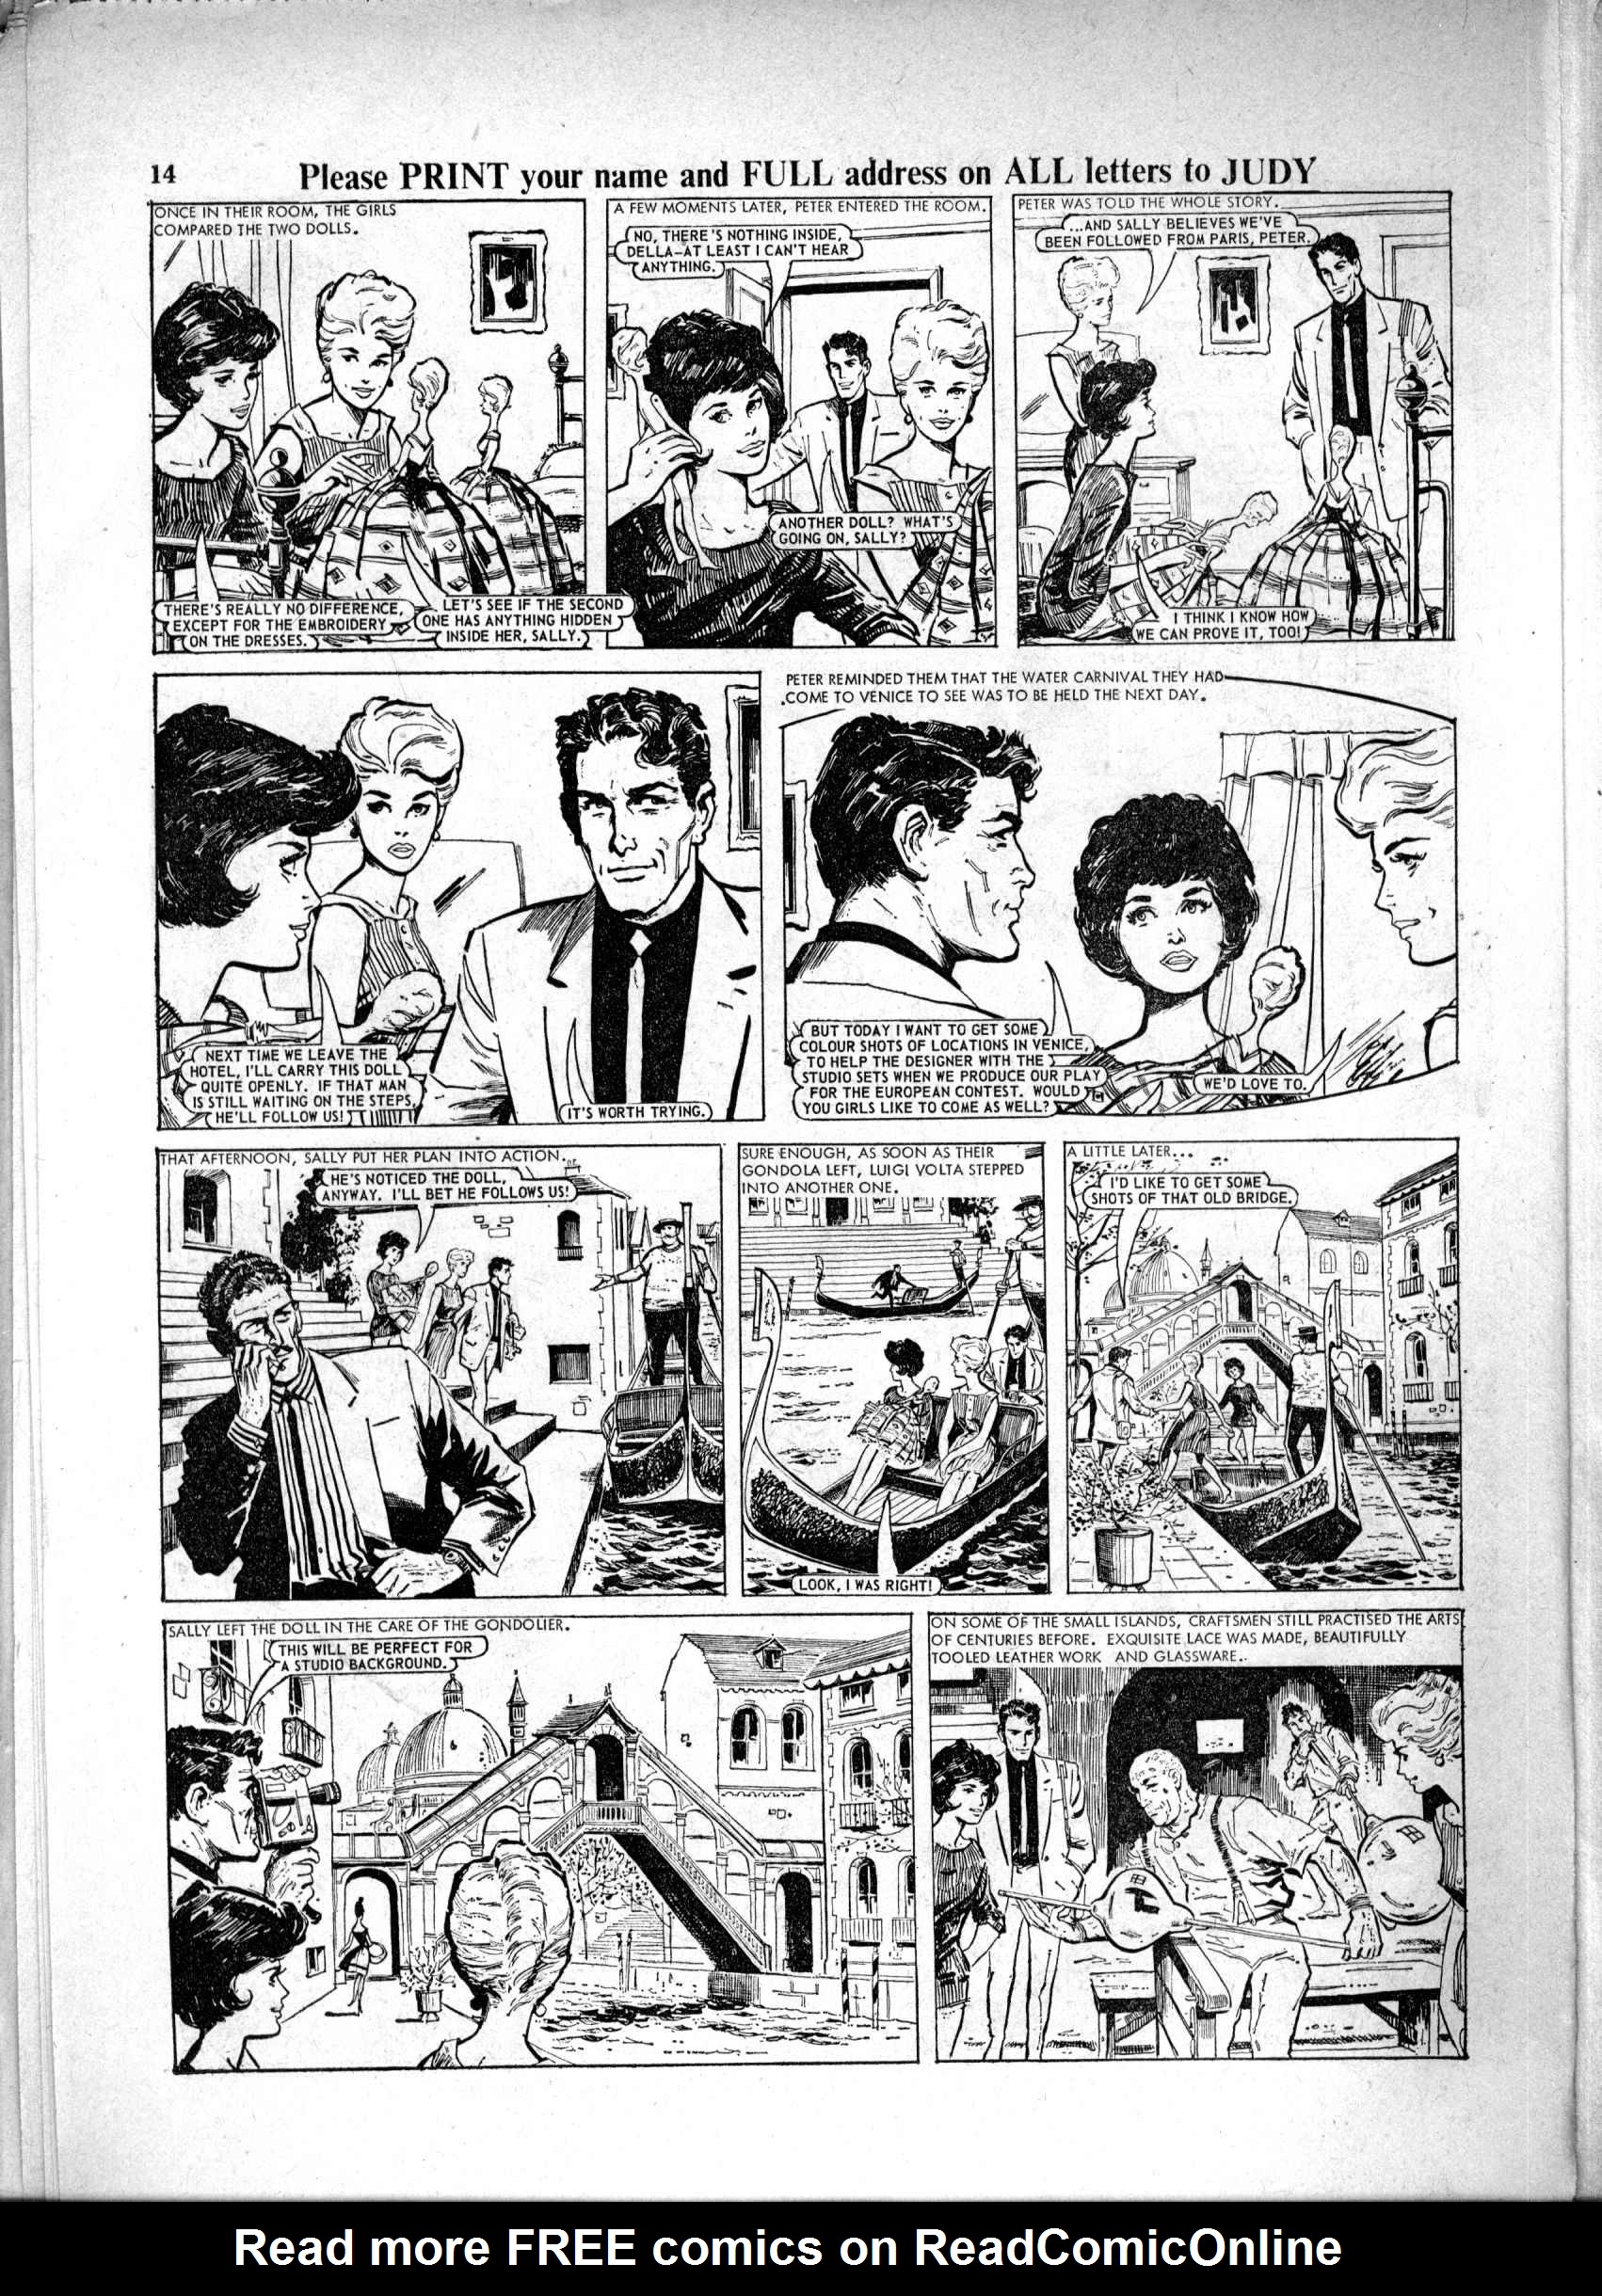 Read online Judy comic -  Issue #231 - 14